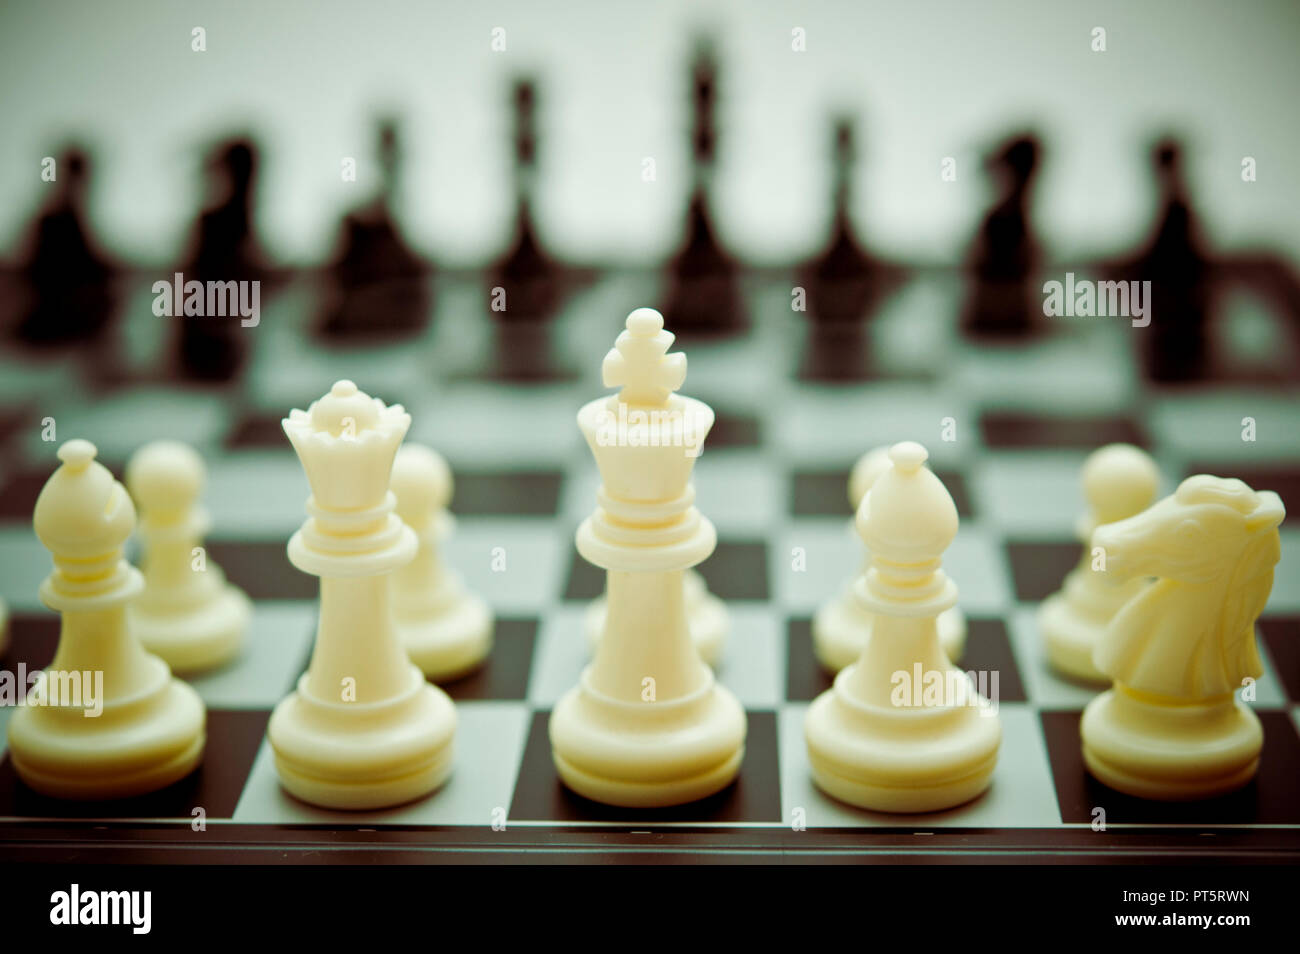 chessboard with all pieces at the starting position - Stock Image